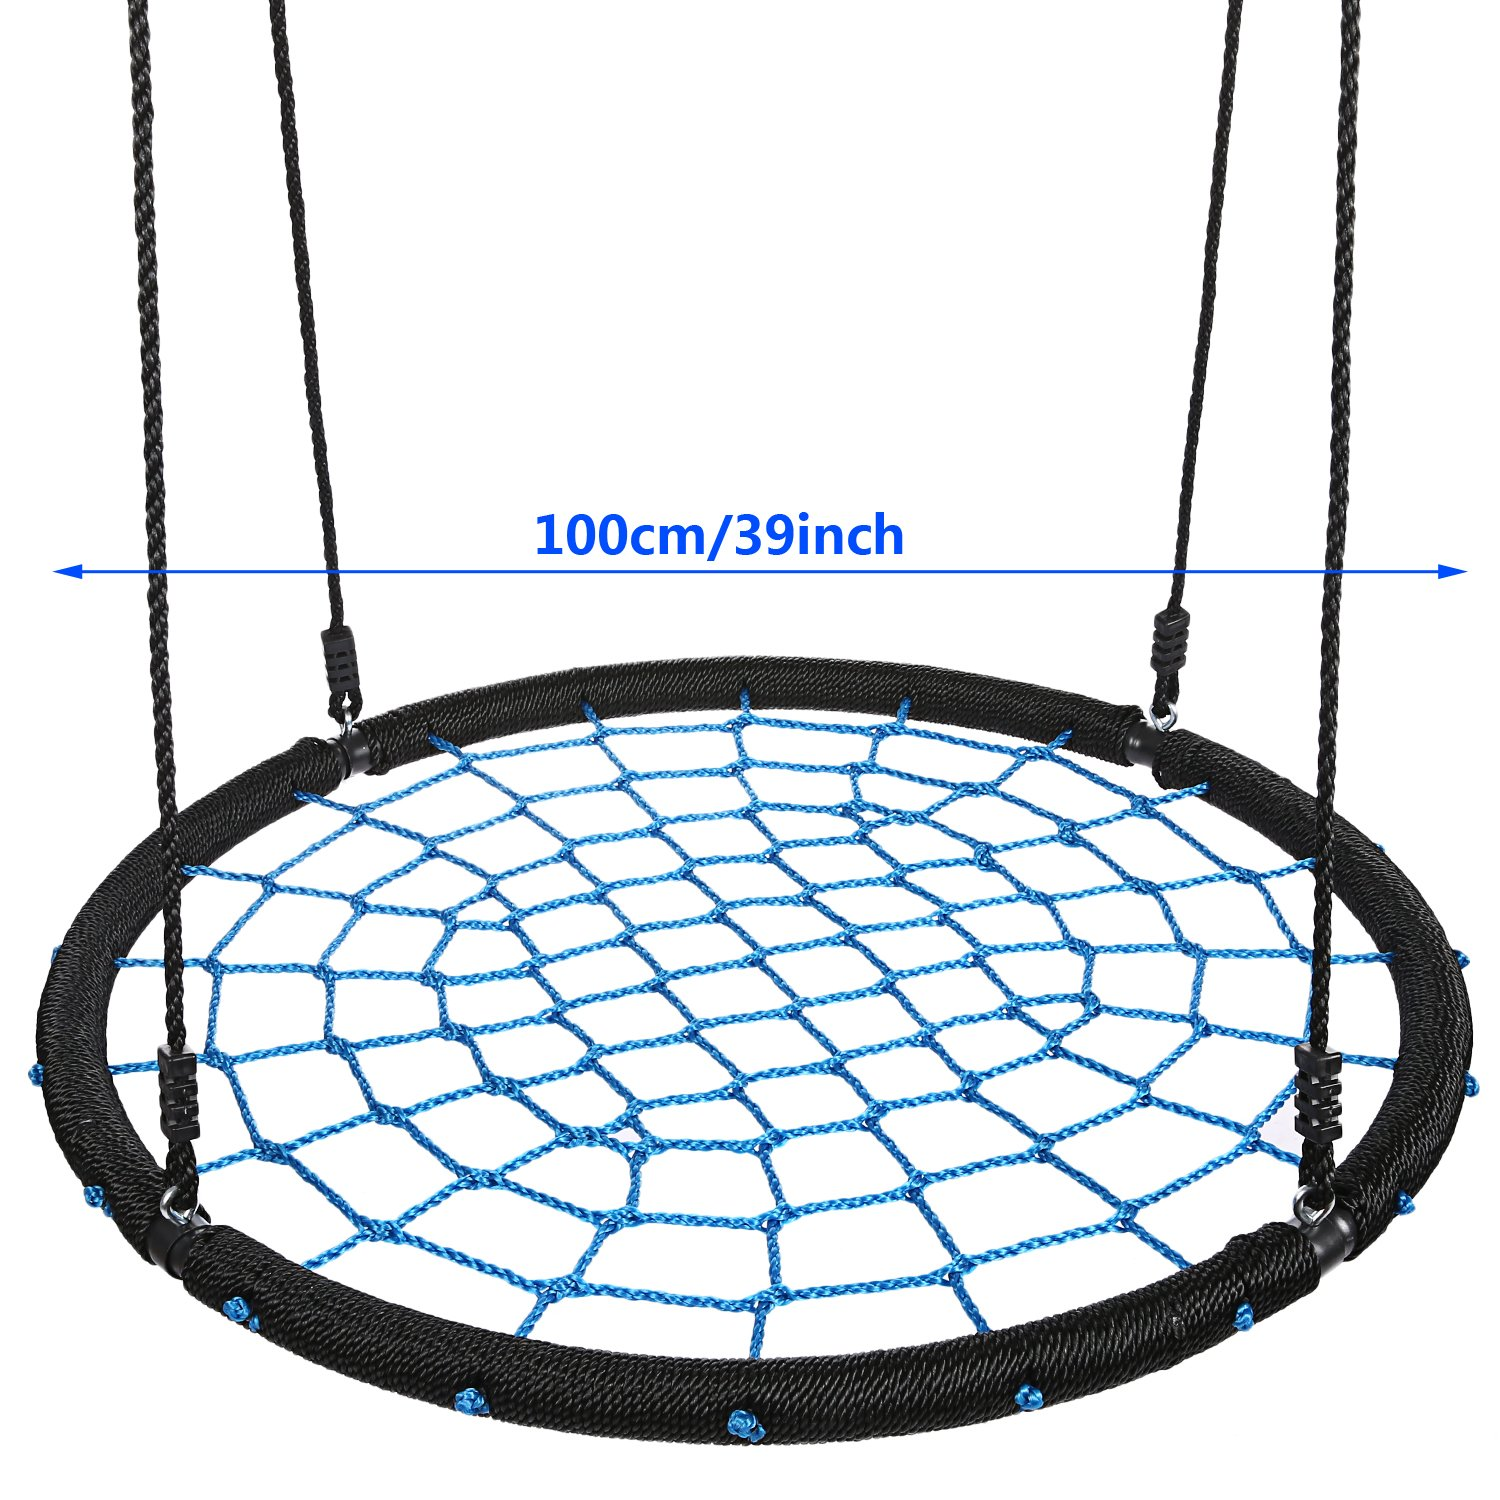 Outdoor Net Swing 39inch Diameter Foldable 2 Person Tree Swing for Garden Kids Children Boys Girls by PEATAO (Image #3)